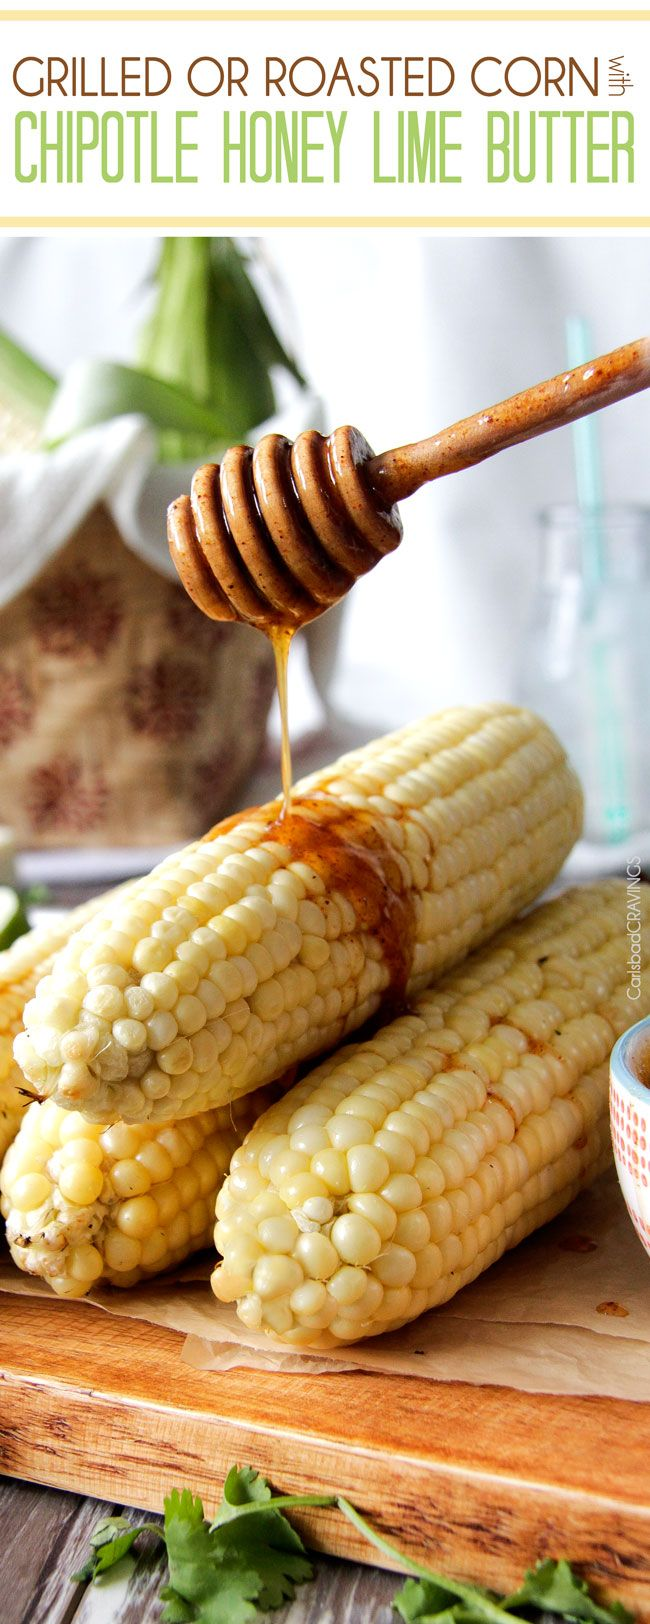 ... corn on the cob recipes on Pinterest | Sweet corn, Salts and Cilantro